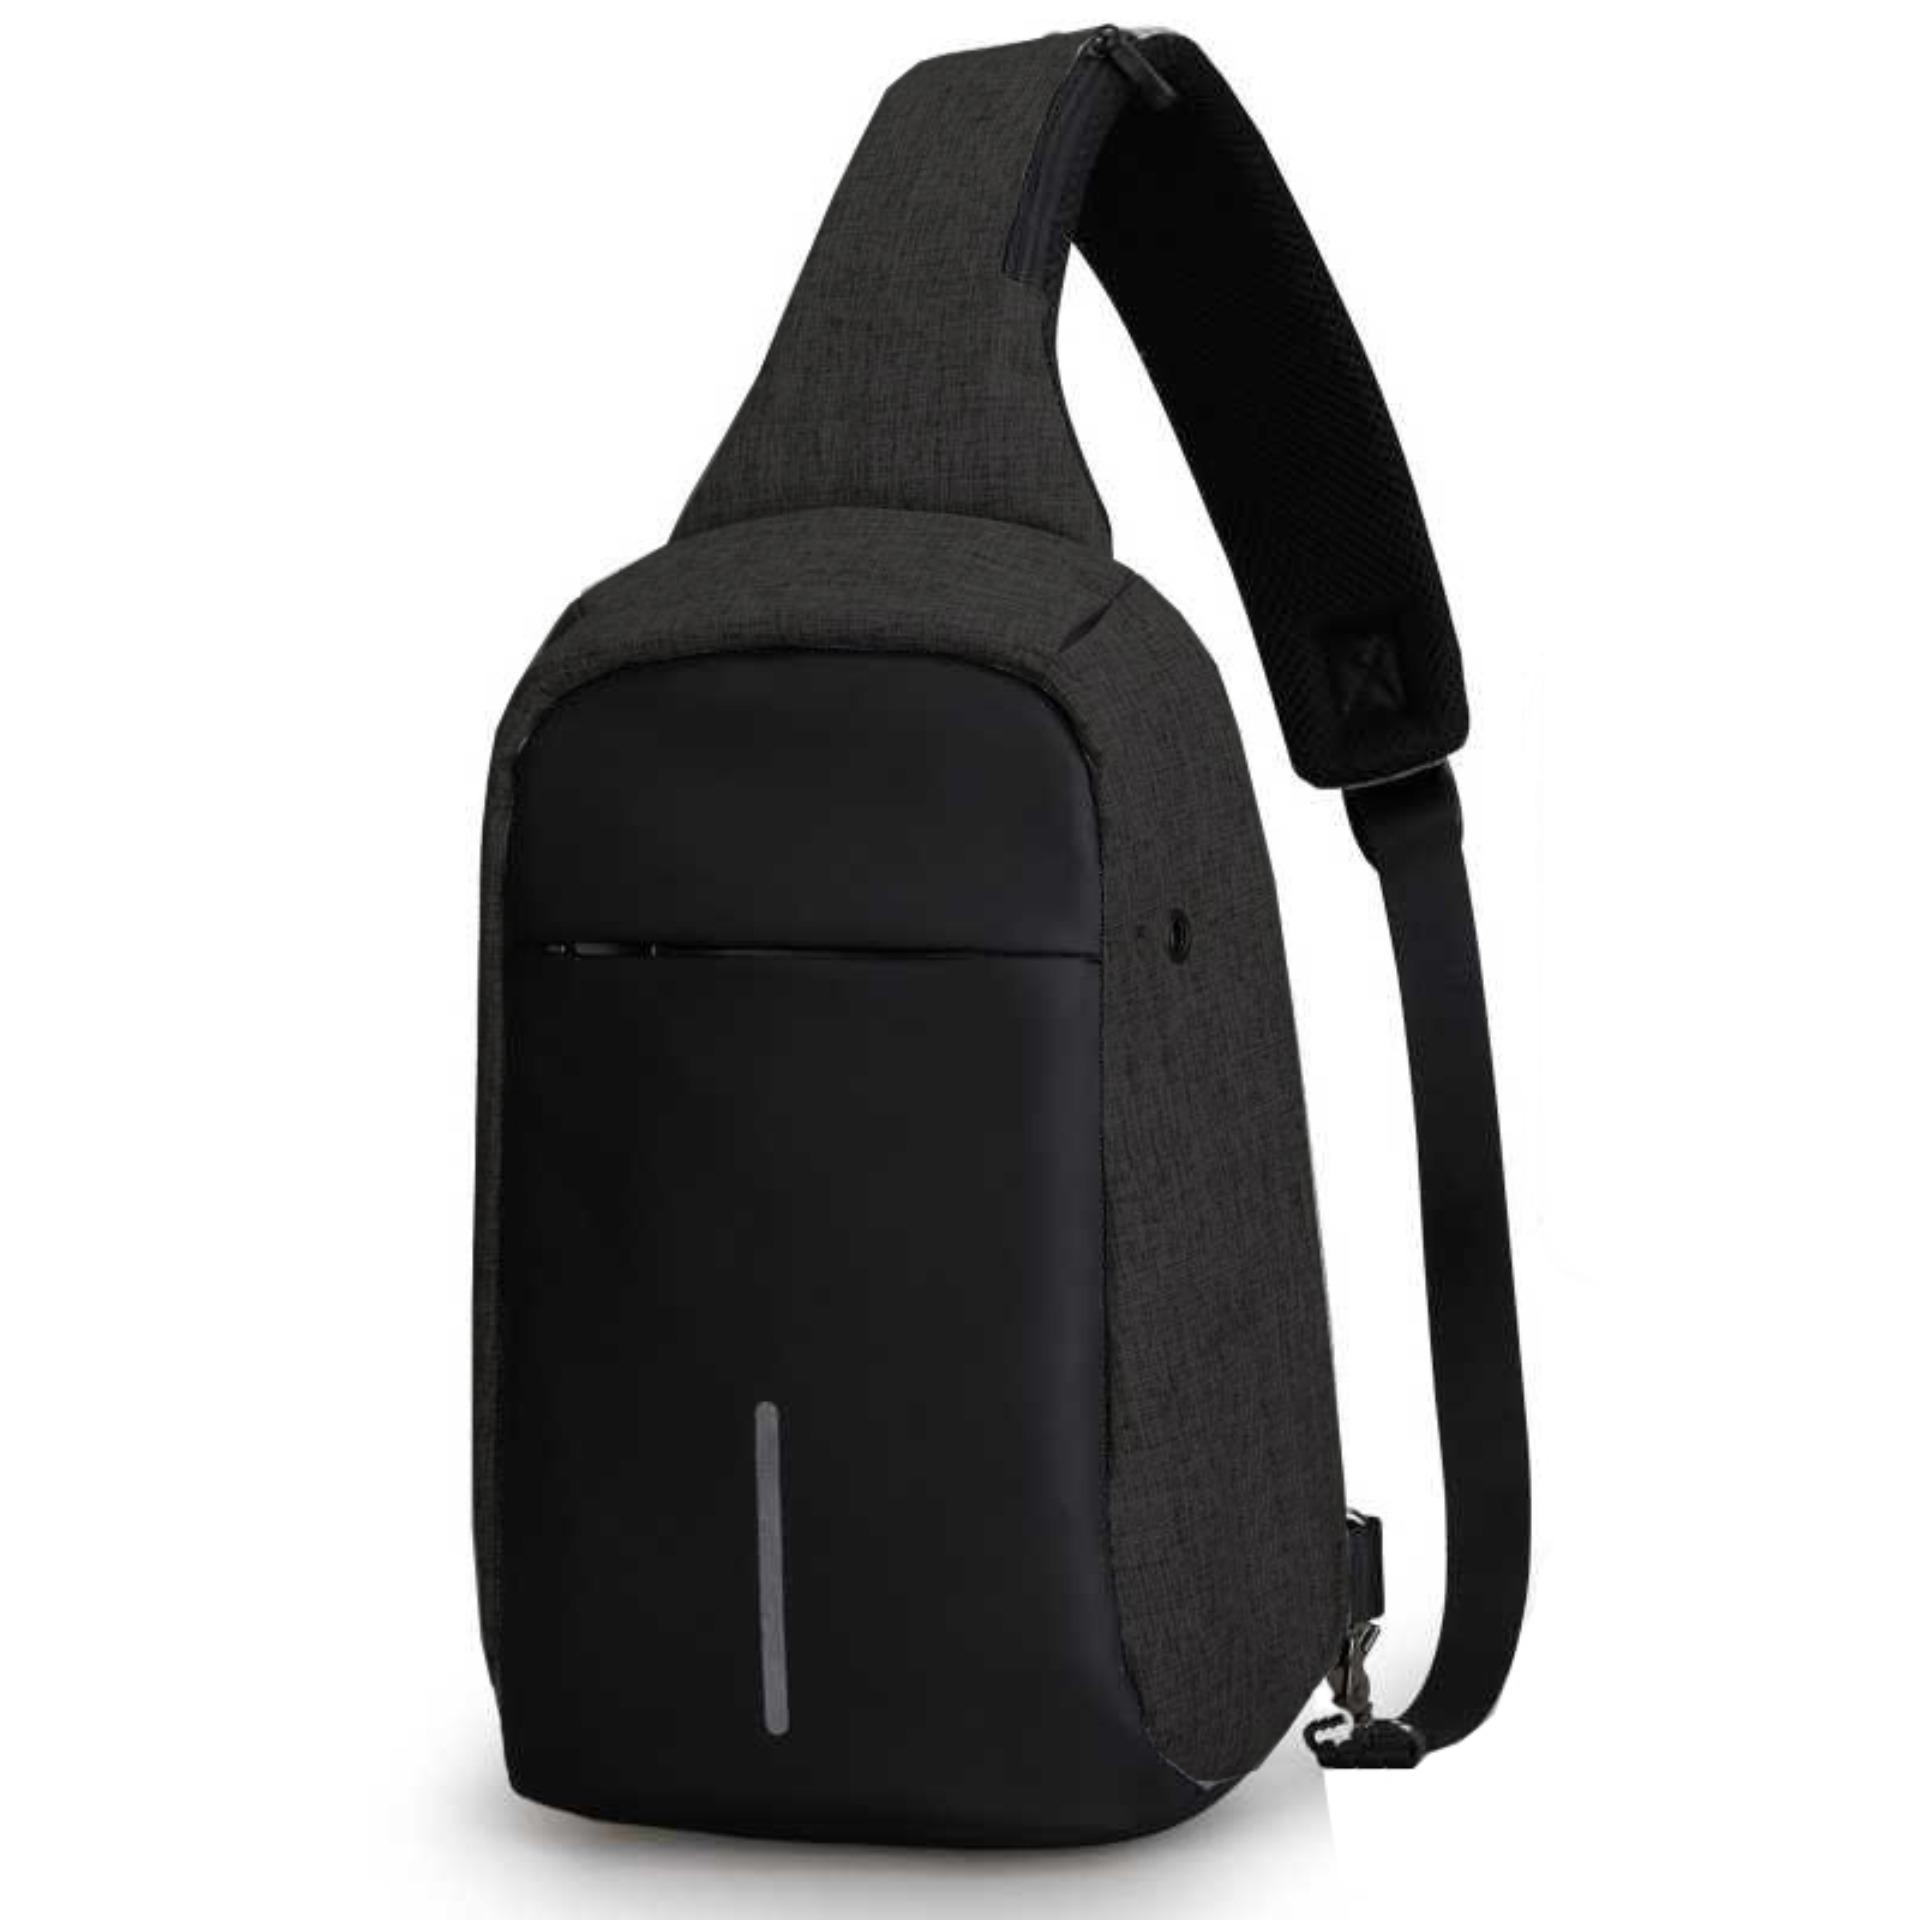 Tas Slempang Anti Maling Non USB With Port Earphone Waterproof - Hitam